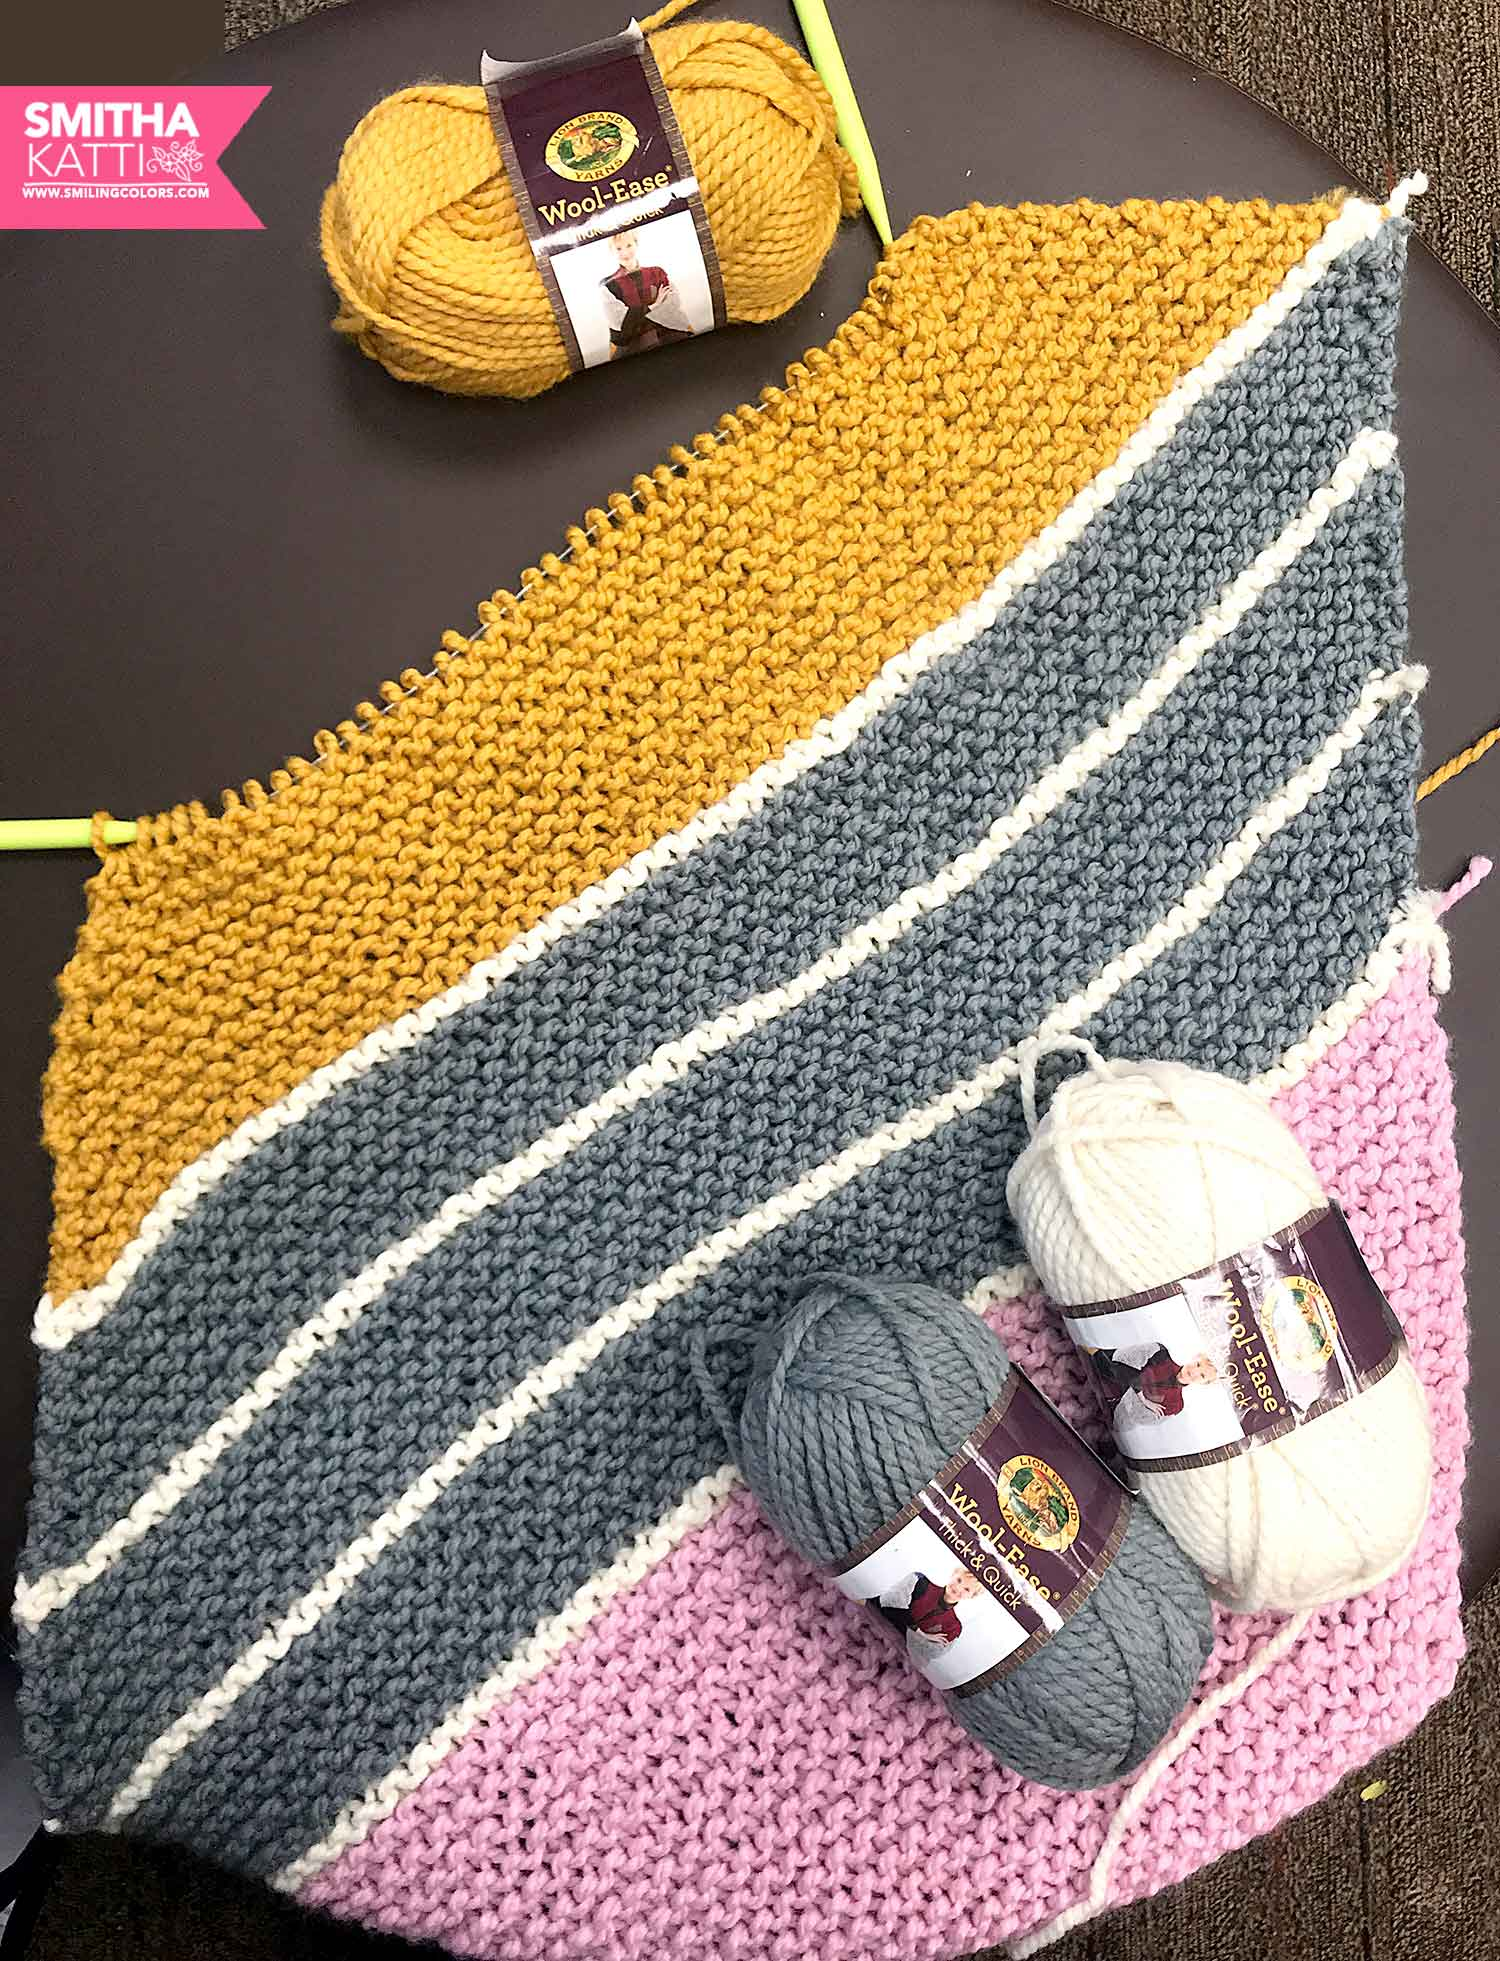 How To Knit A Diagonal Rectangle Tutorial To Make A Baby Blanket In 5 Days